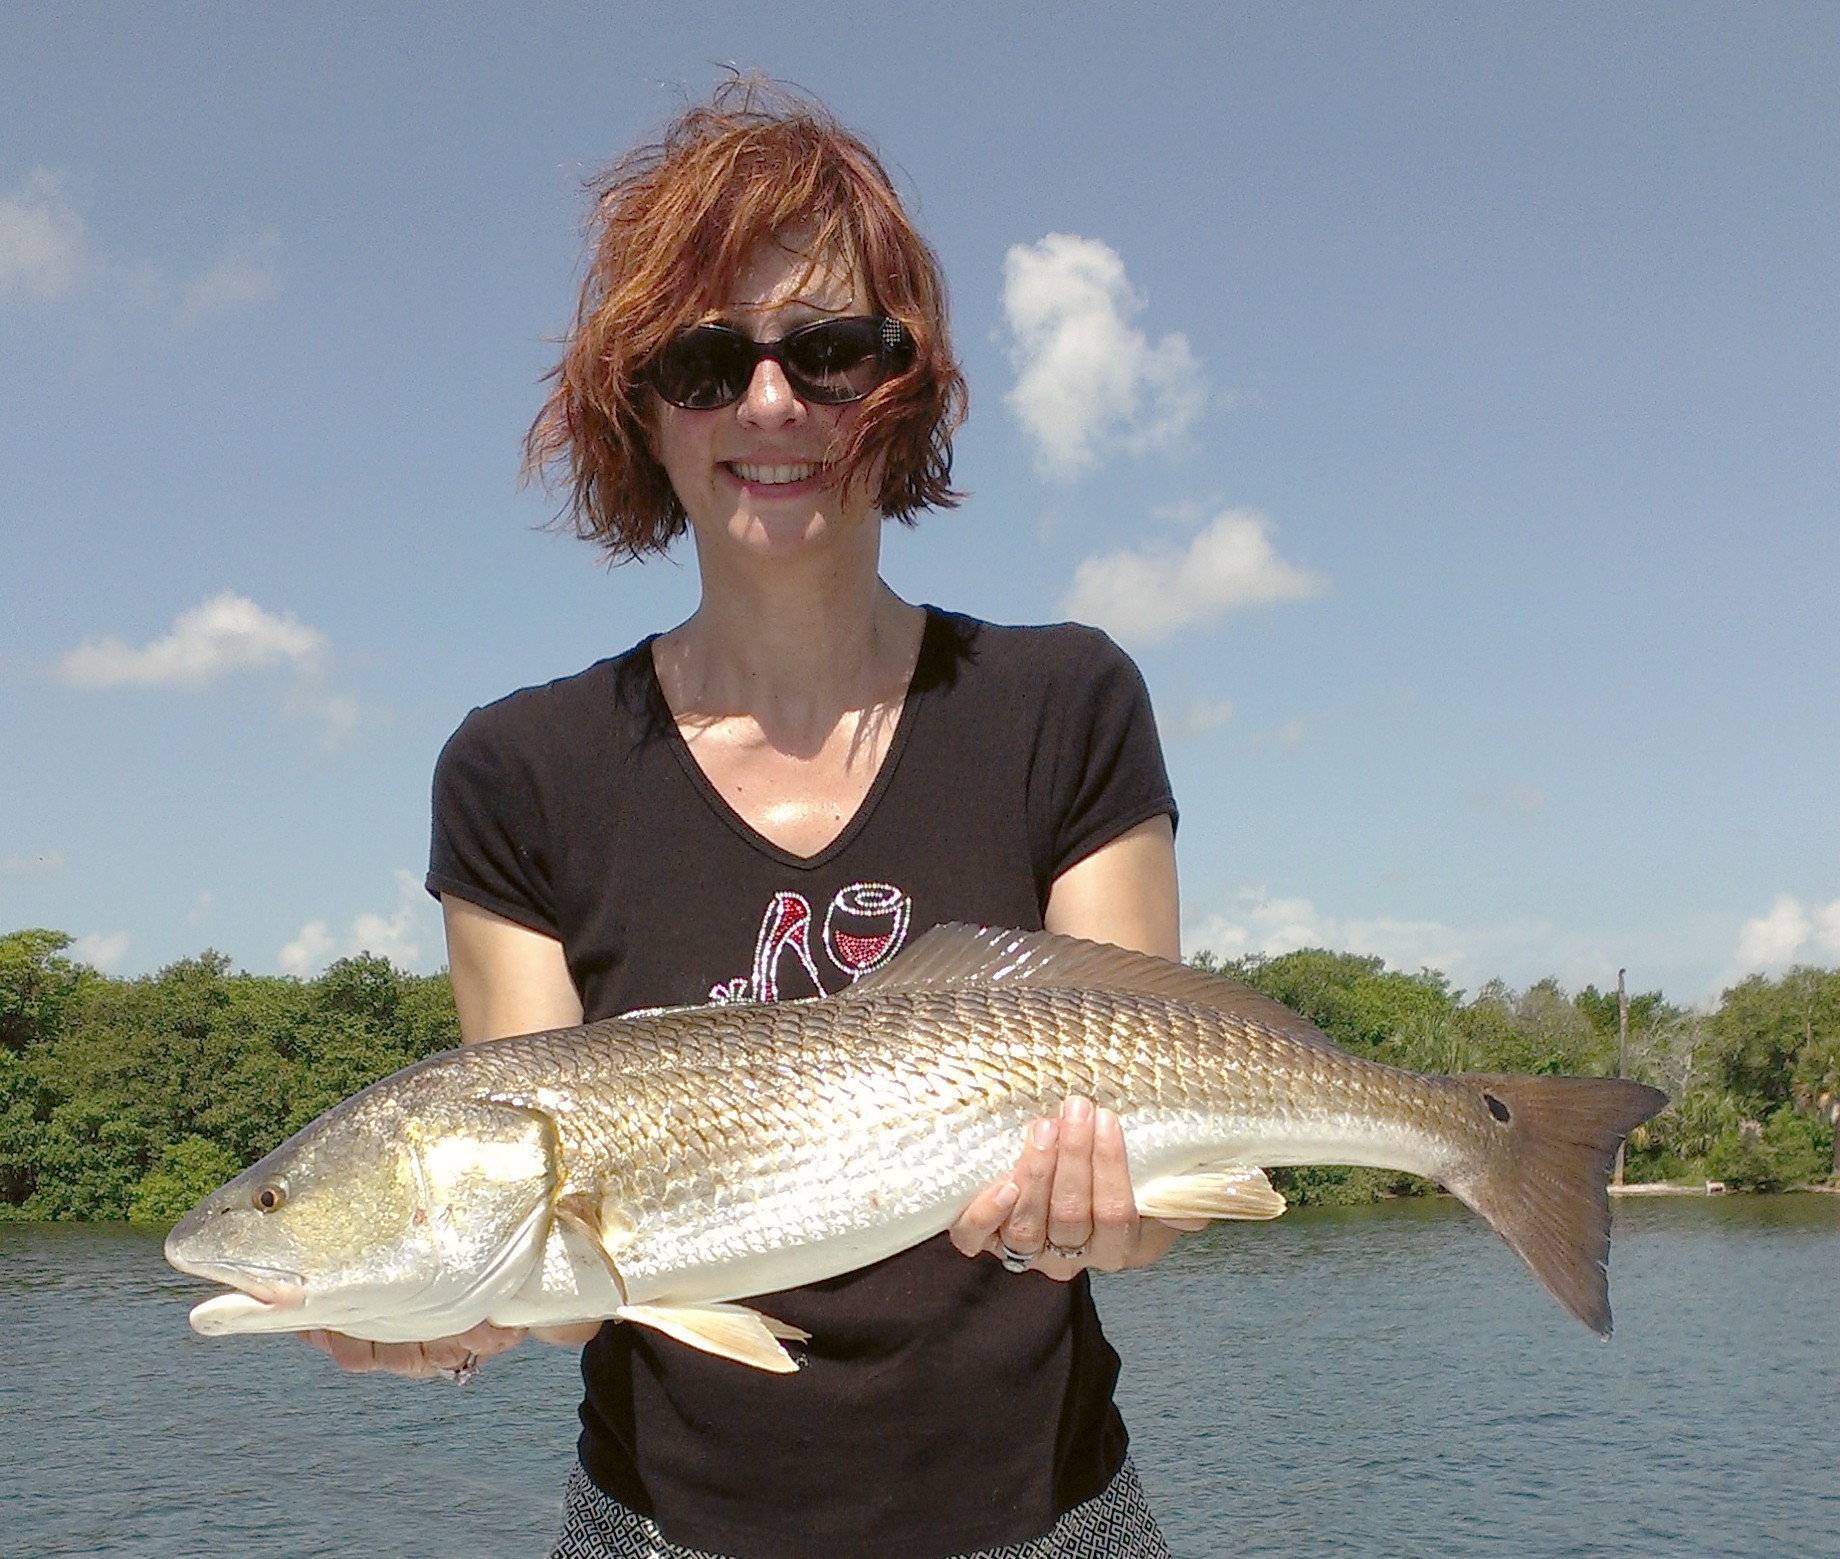 About tampa bay fishing tampa fishing guides for Tampa bay fishing outfitters